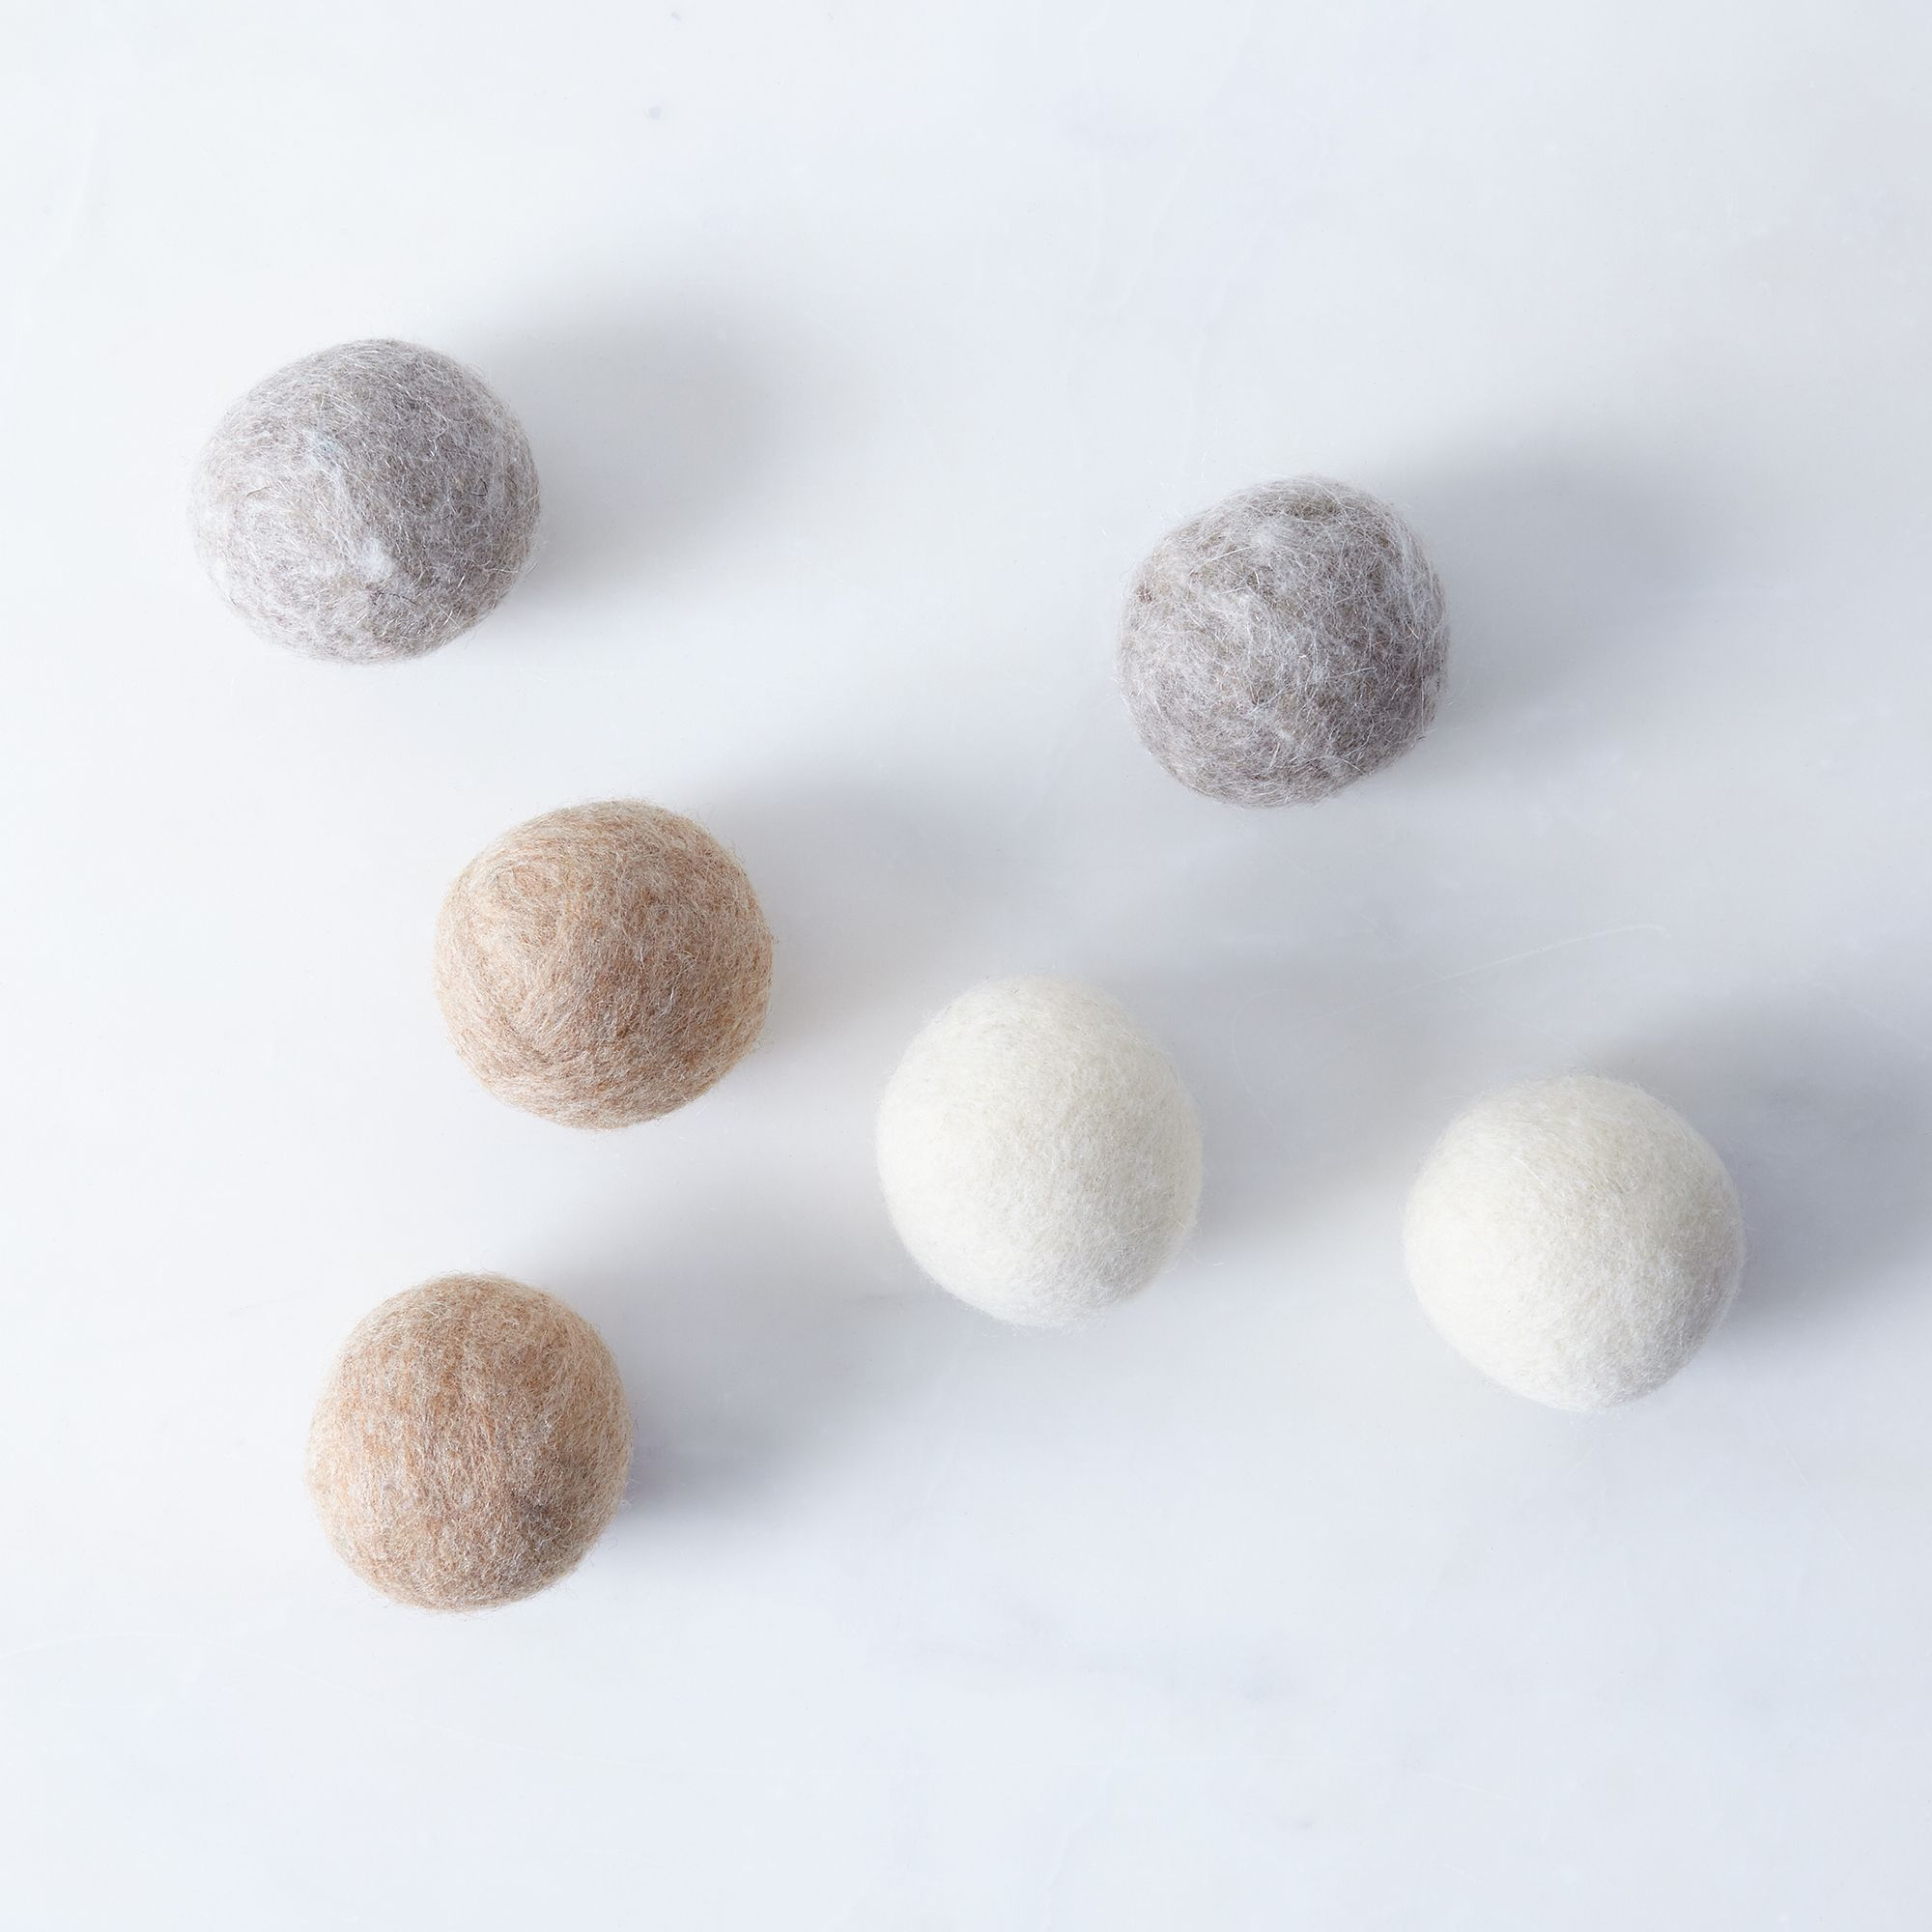 8c41ea52 f1f3 4979 8bf1 ffbe1c66a9d2  2016 0805 bog berry oatmeal wool dryer balls set of 6 silo rocky luten 278